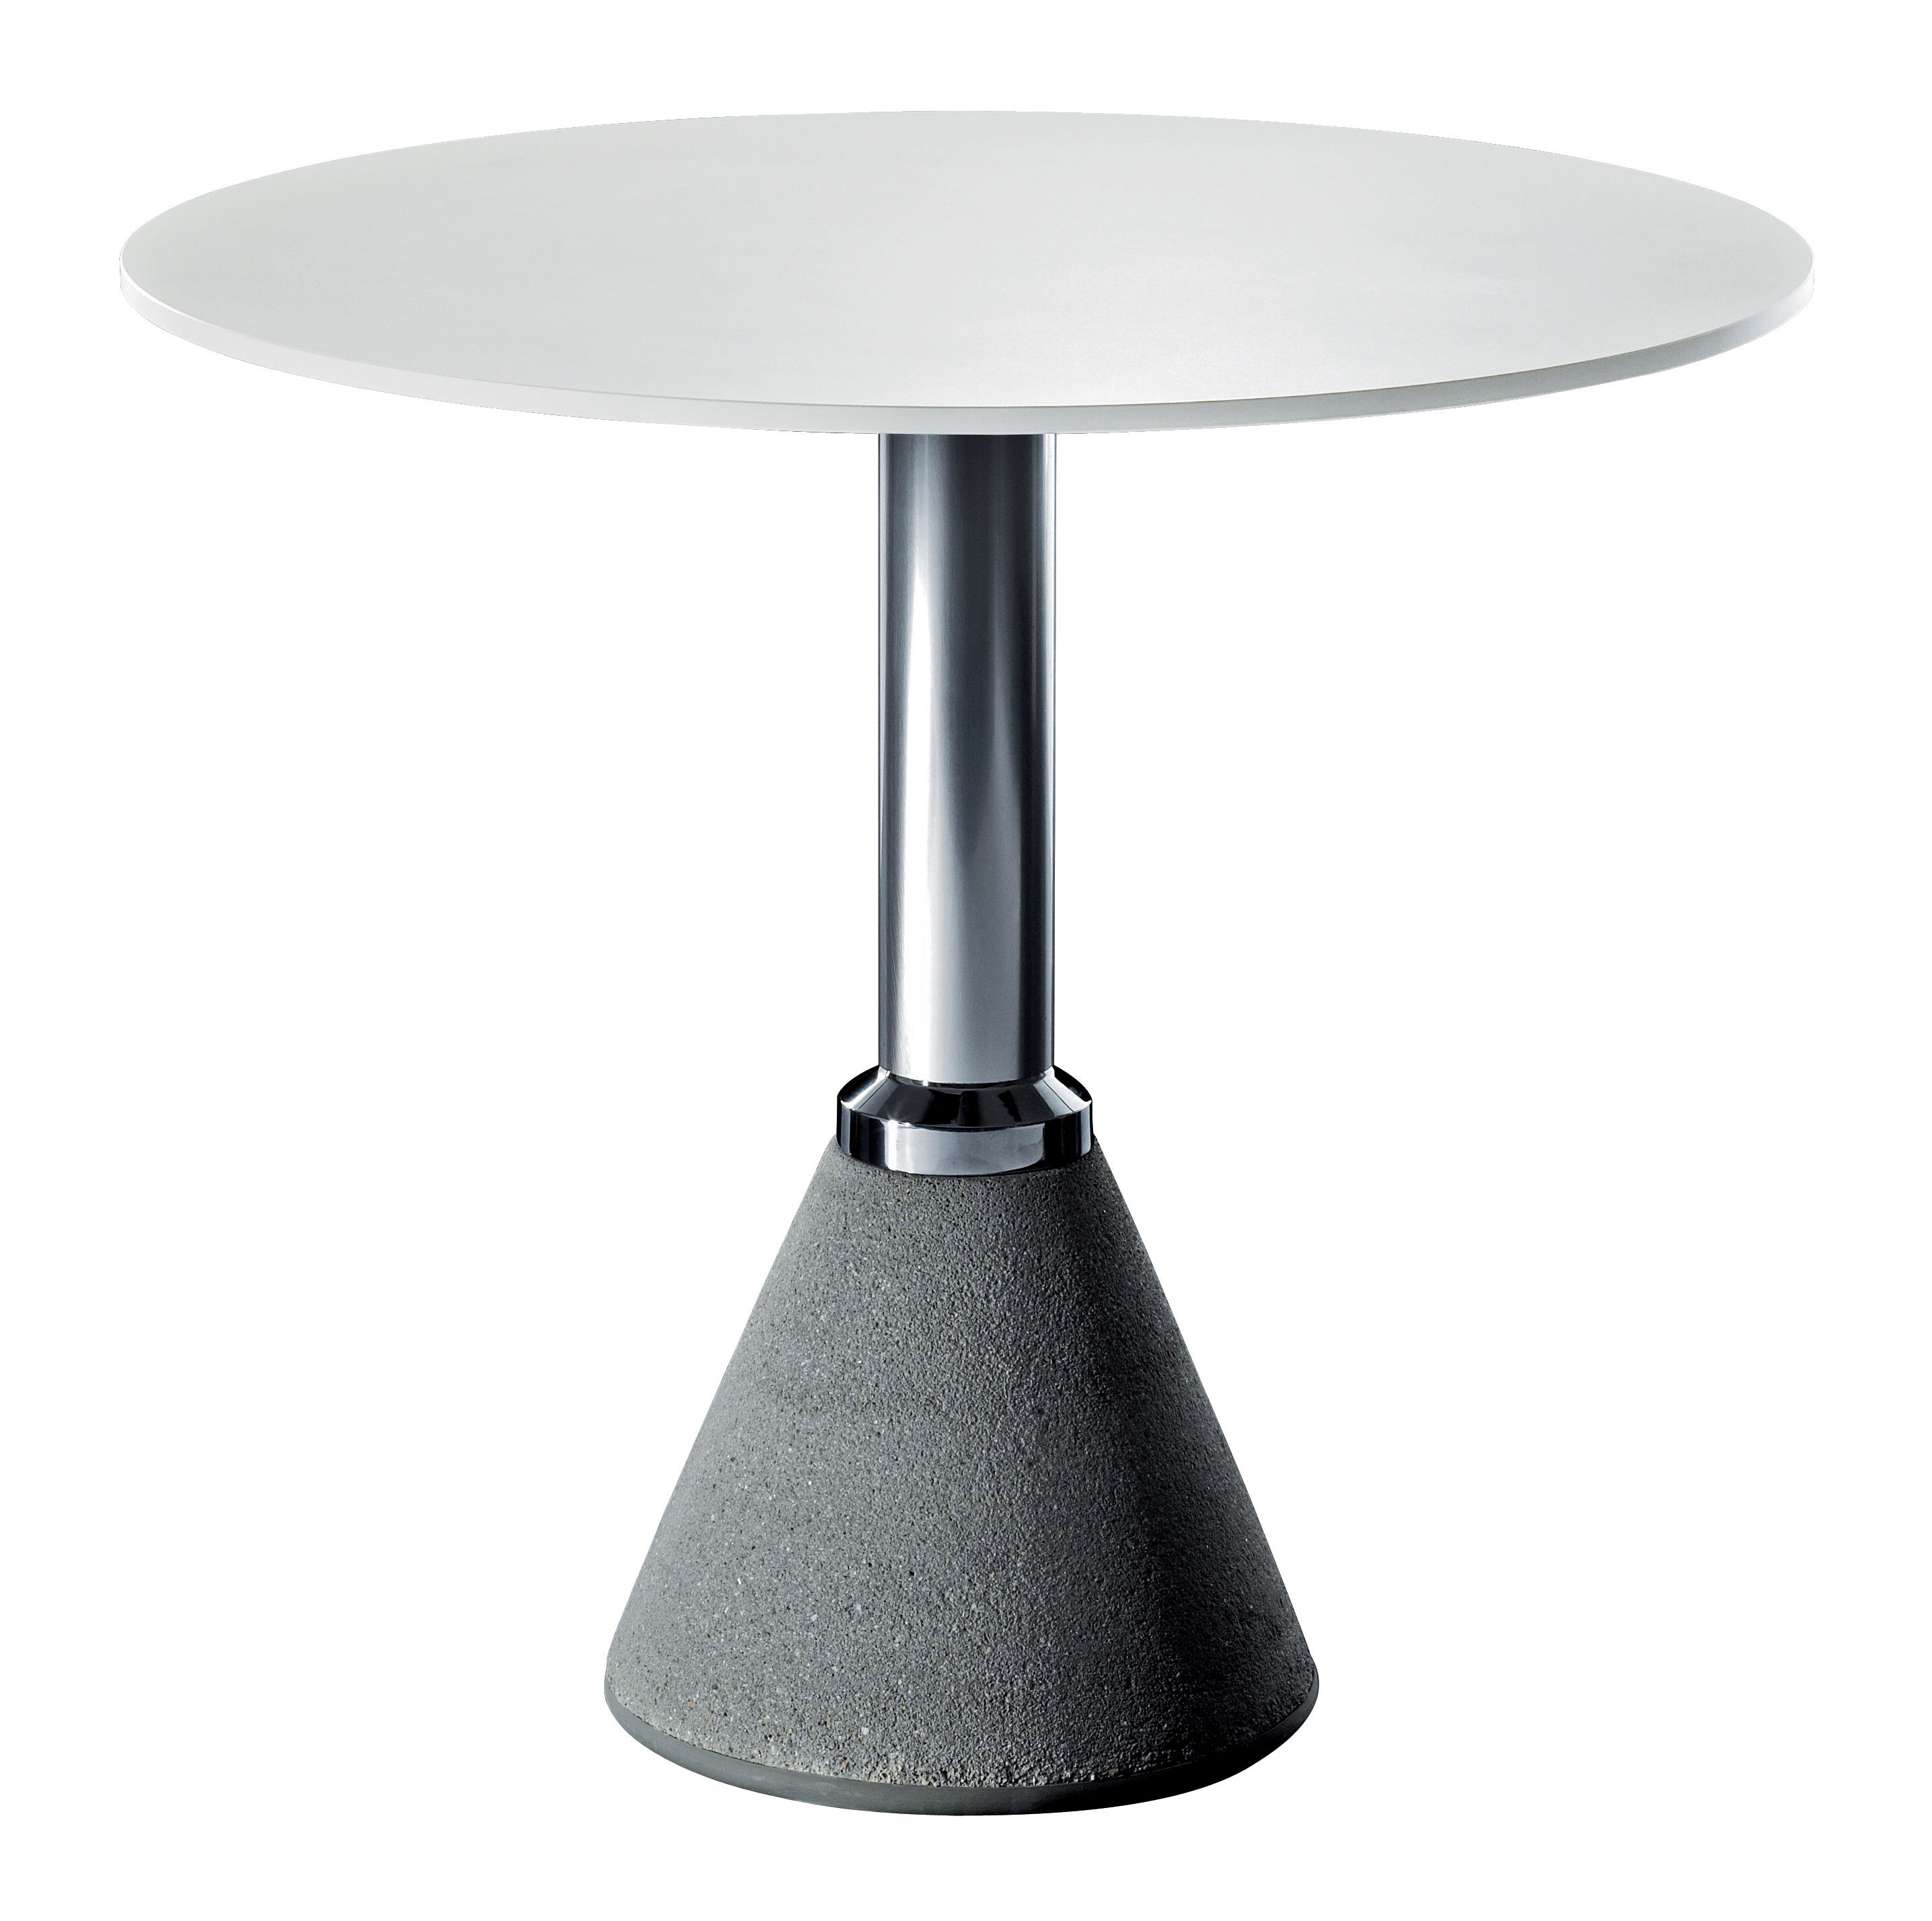 Outdoor - Garden Tables - One Bistrot Round table - Ø 79 cm by Magis - White Ø 79 cm - Aluminium, Concrete, HPL